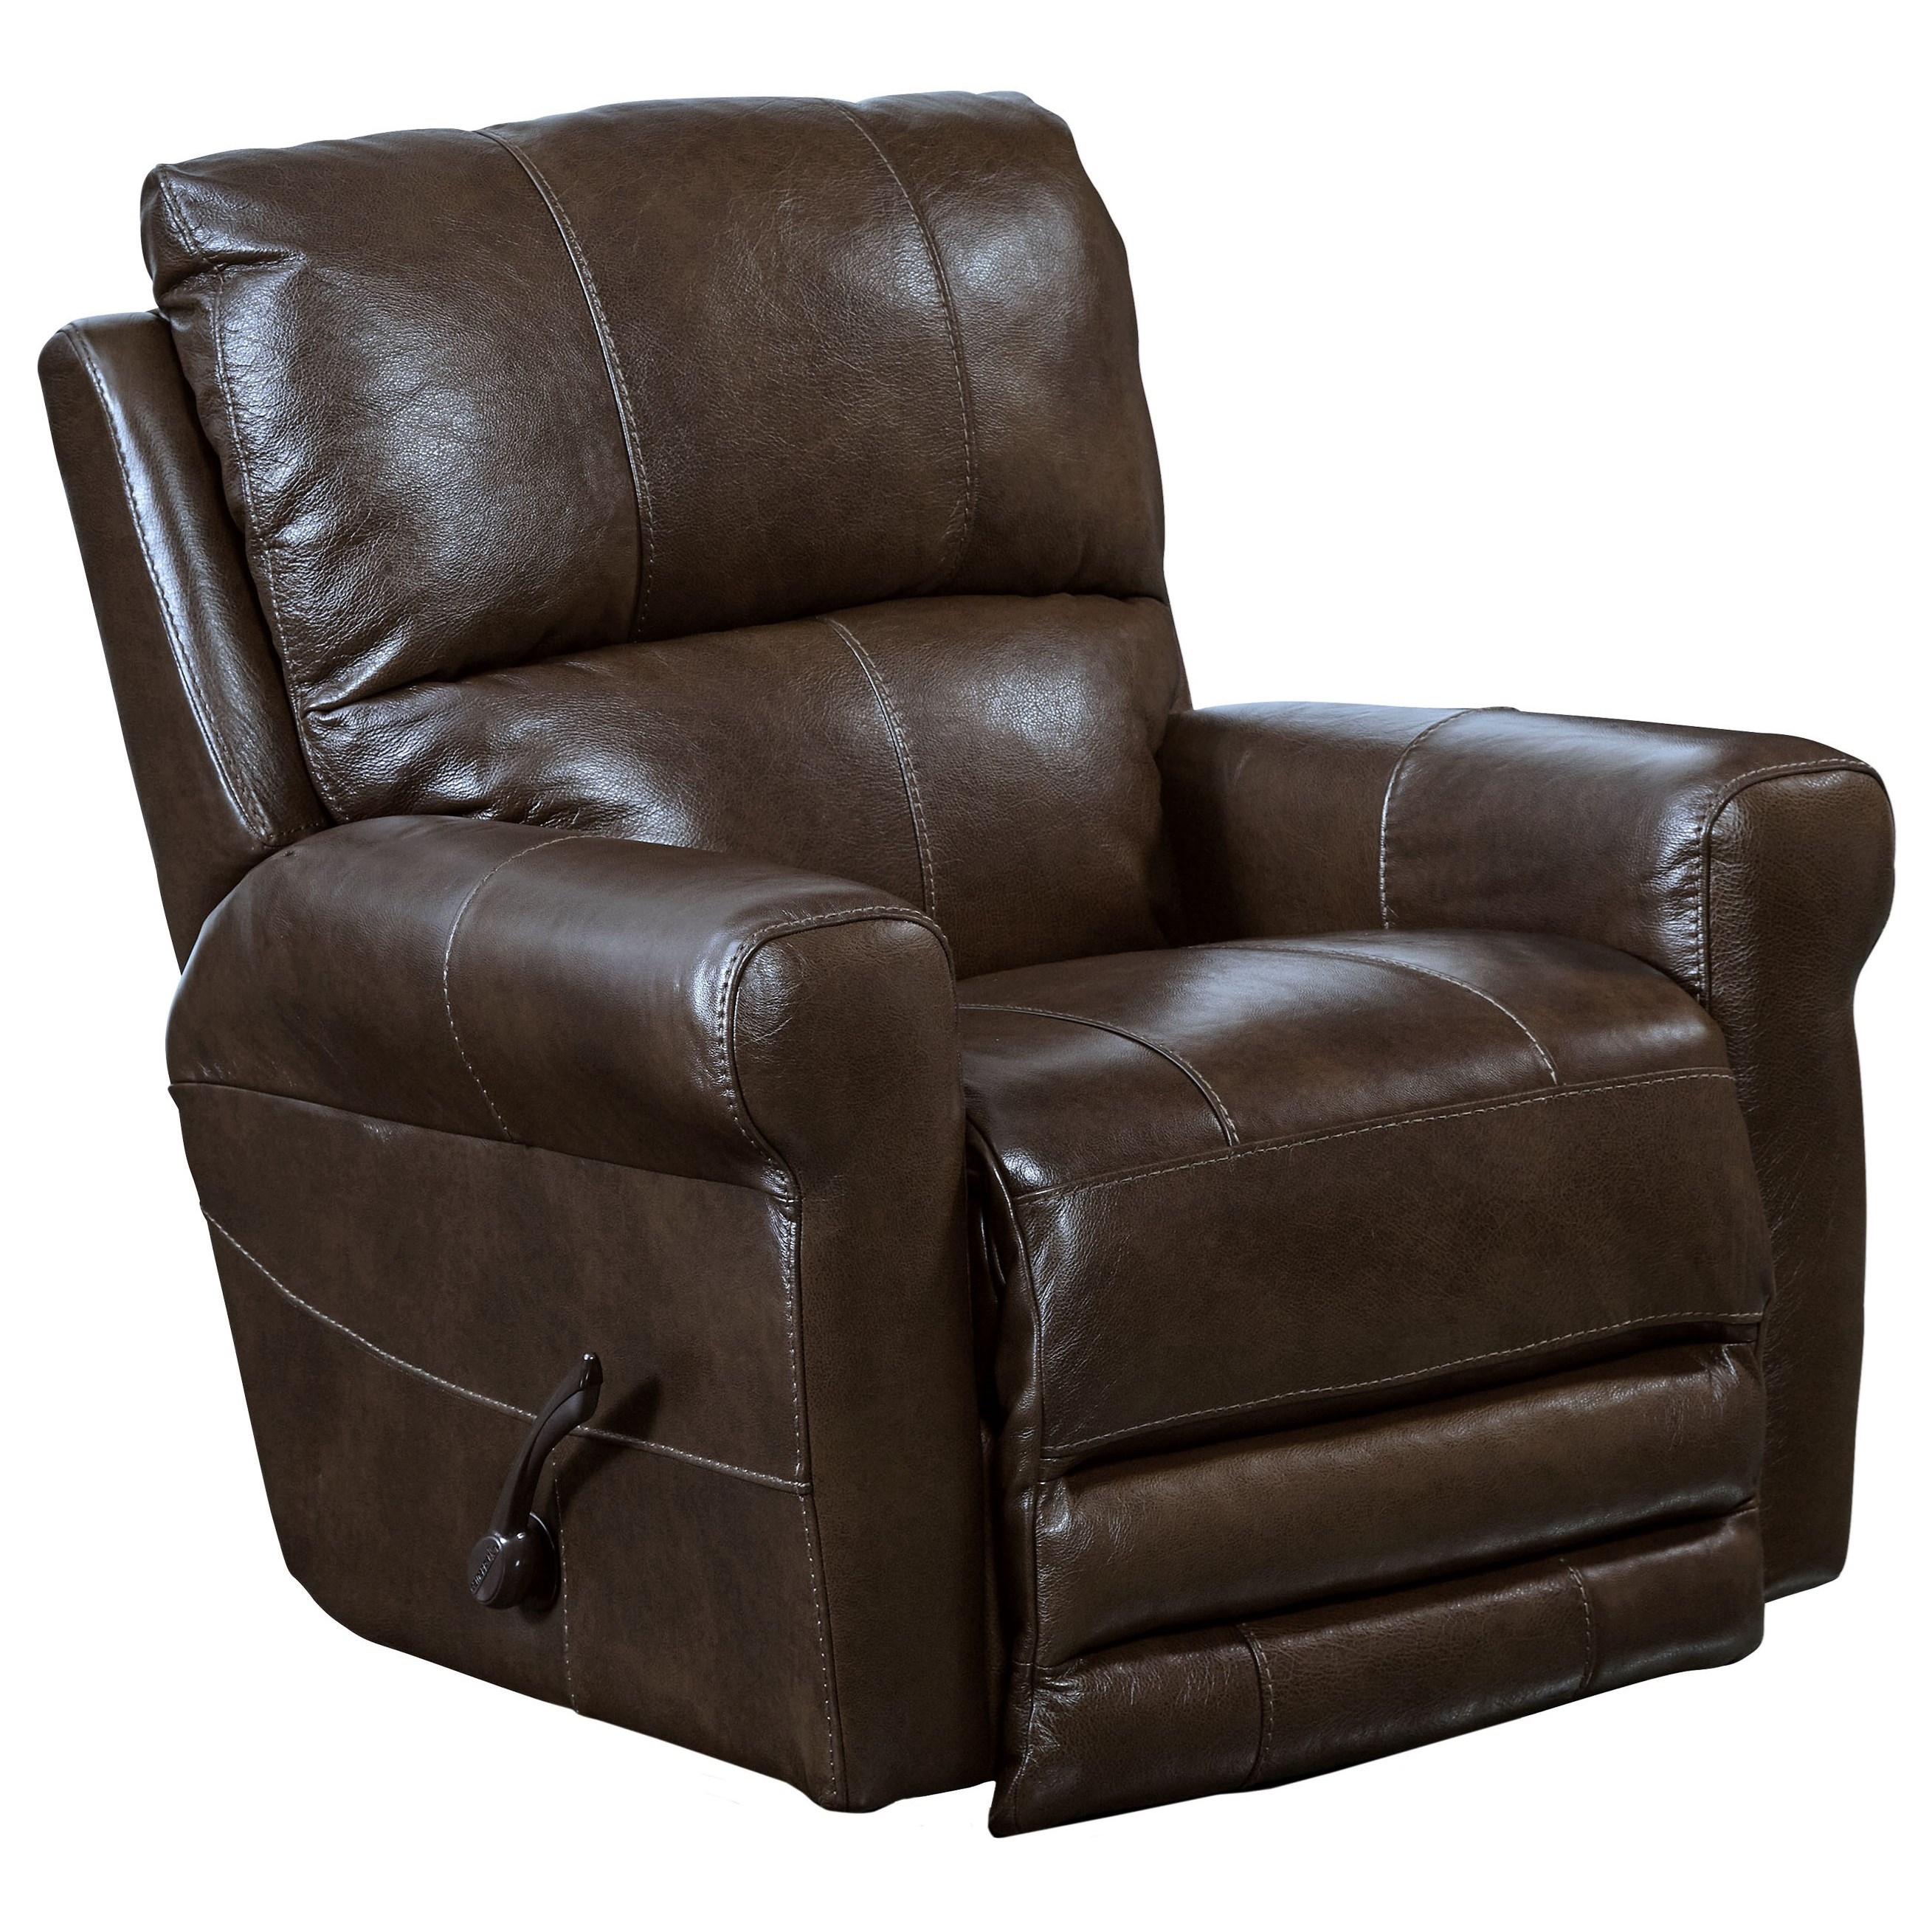 collections recliners recliner adams rocker boardwalk web breville products charcoal furniture